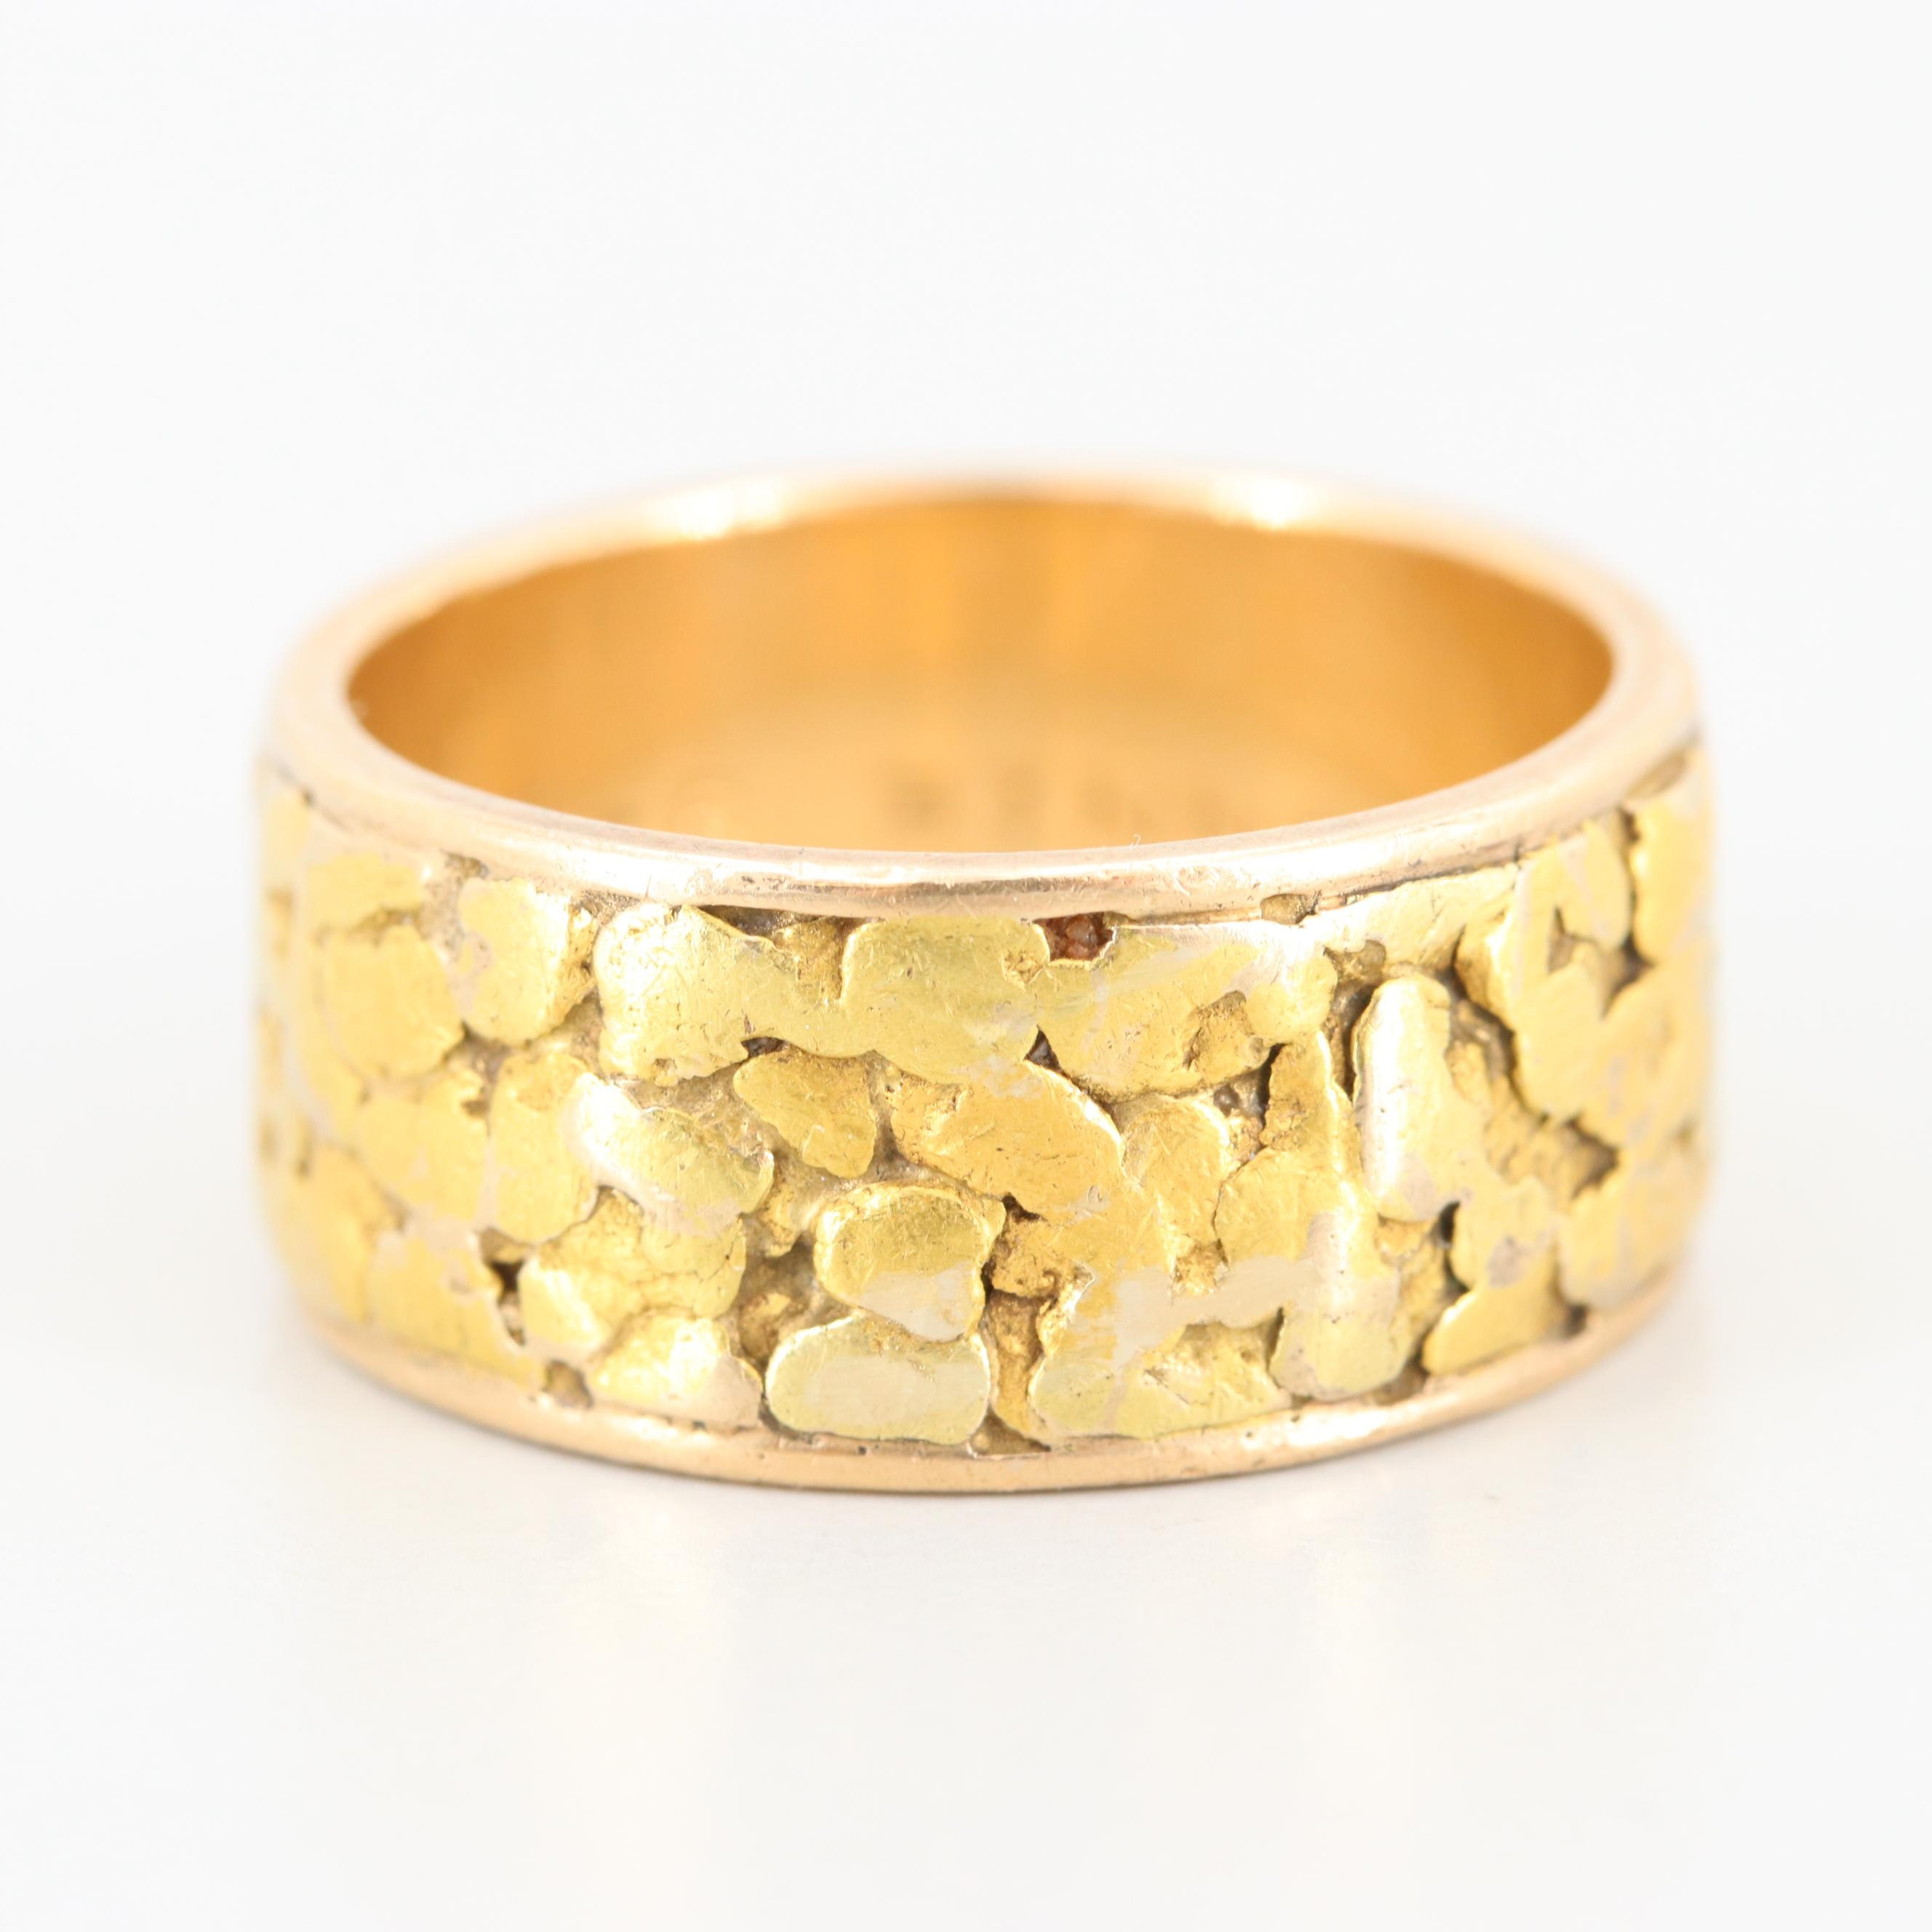 Vintage 14K Yellow Gold Band with Applied 18K Nugget Texture